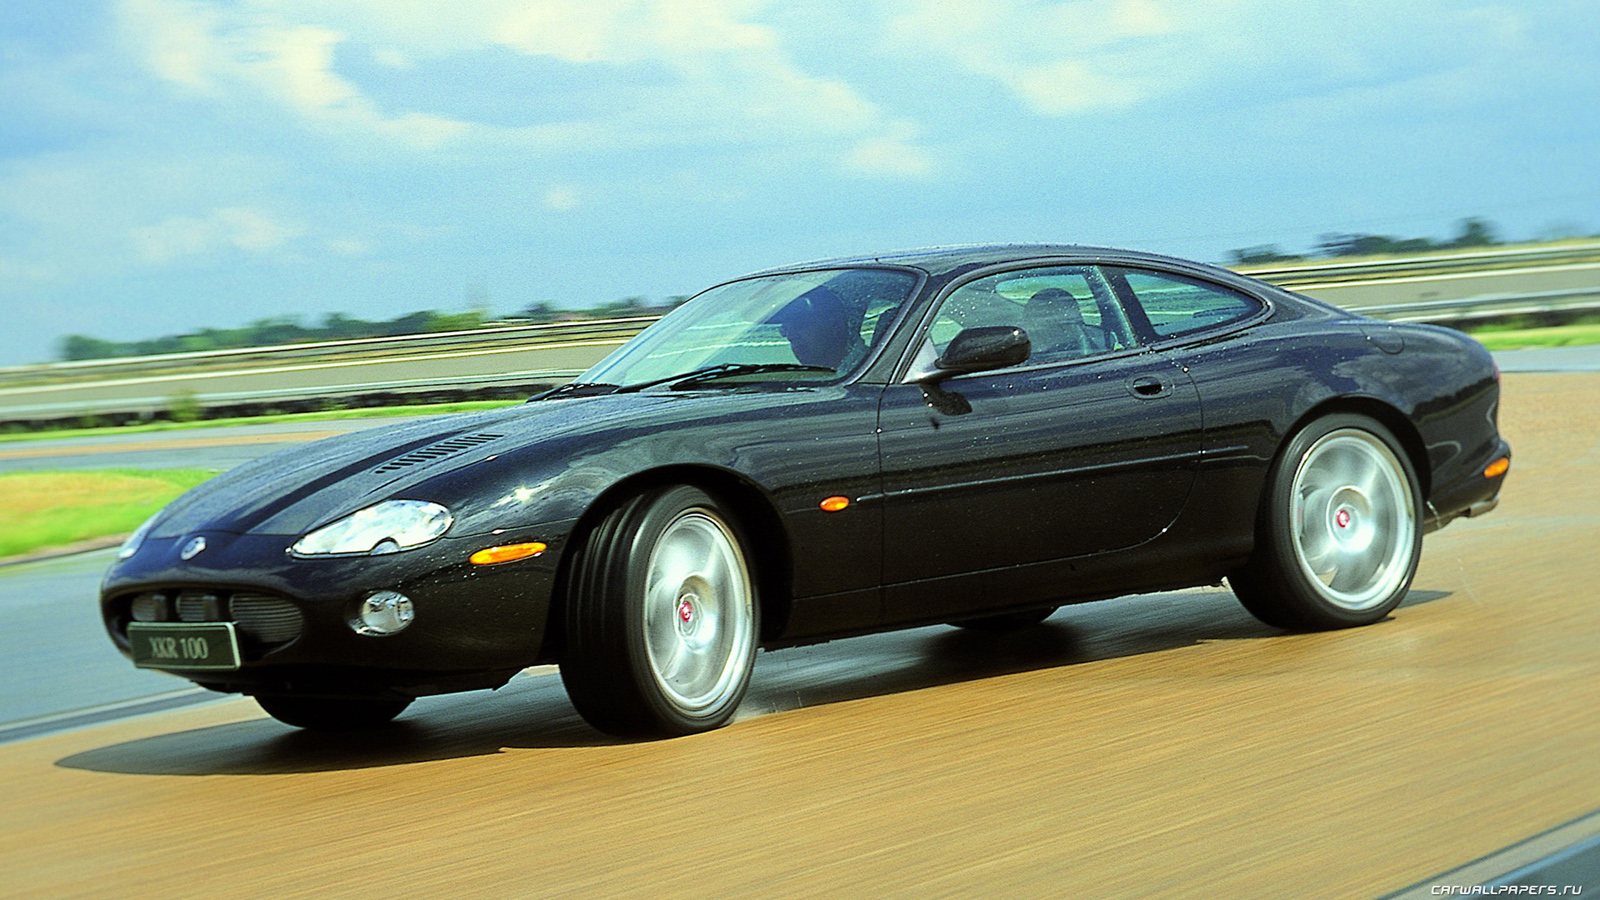 jaguar xkr 2002 review amazing pictures and images look at the car. Black Bedroom Furniture Sets. Home Design Ideas